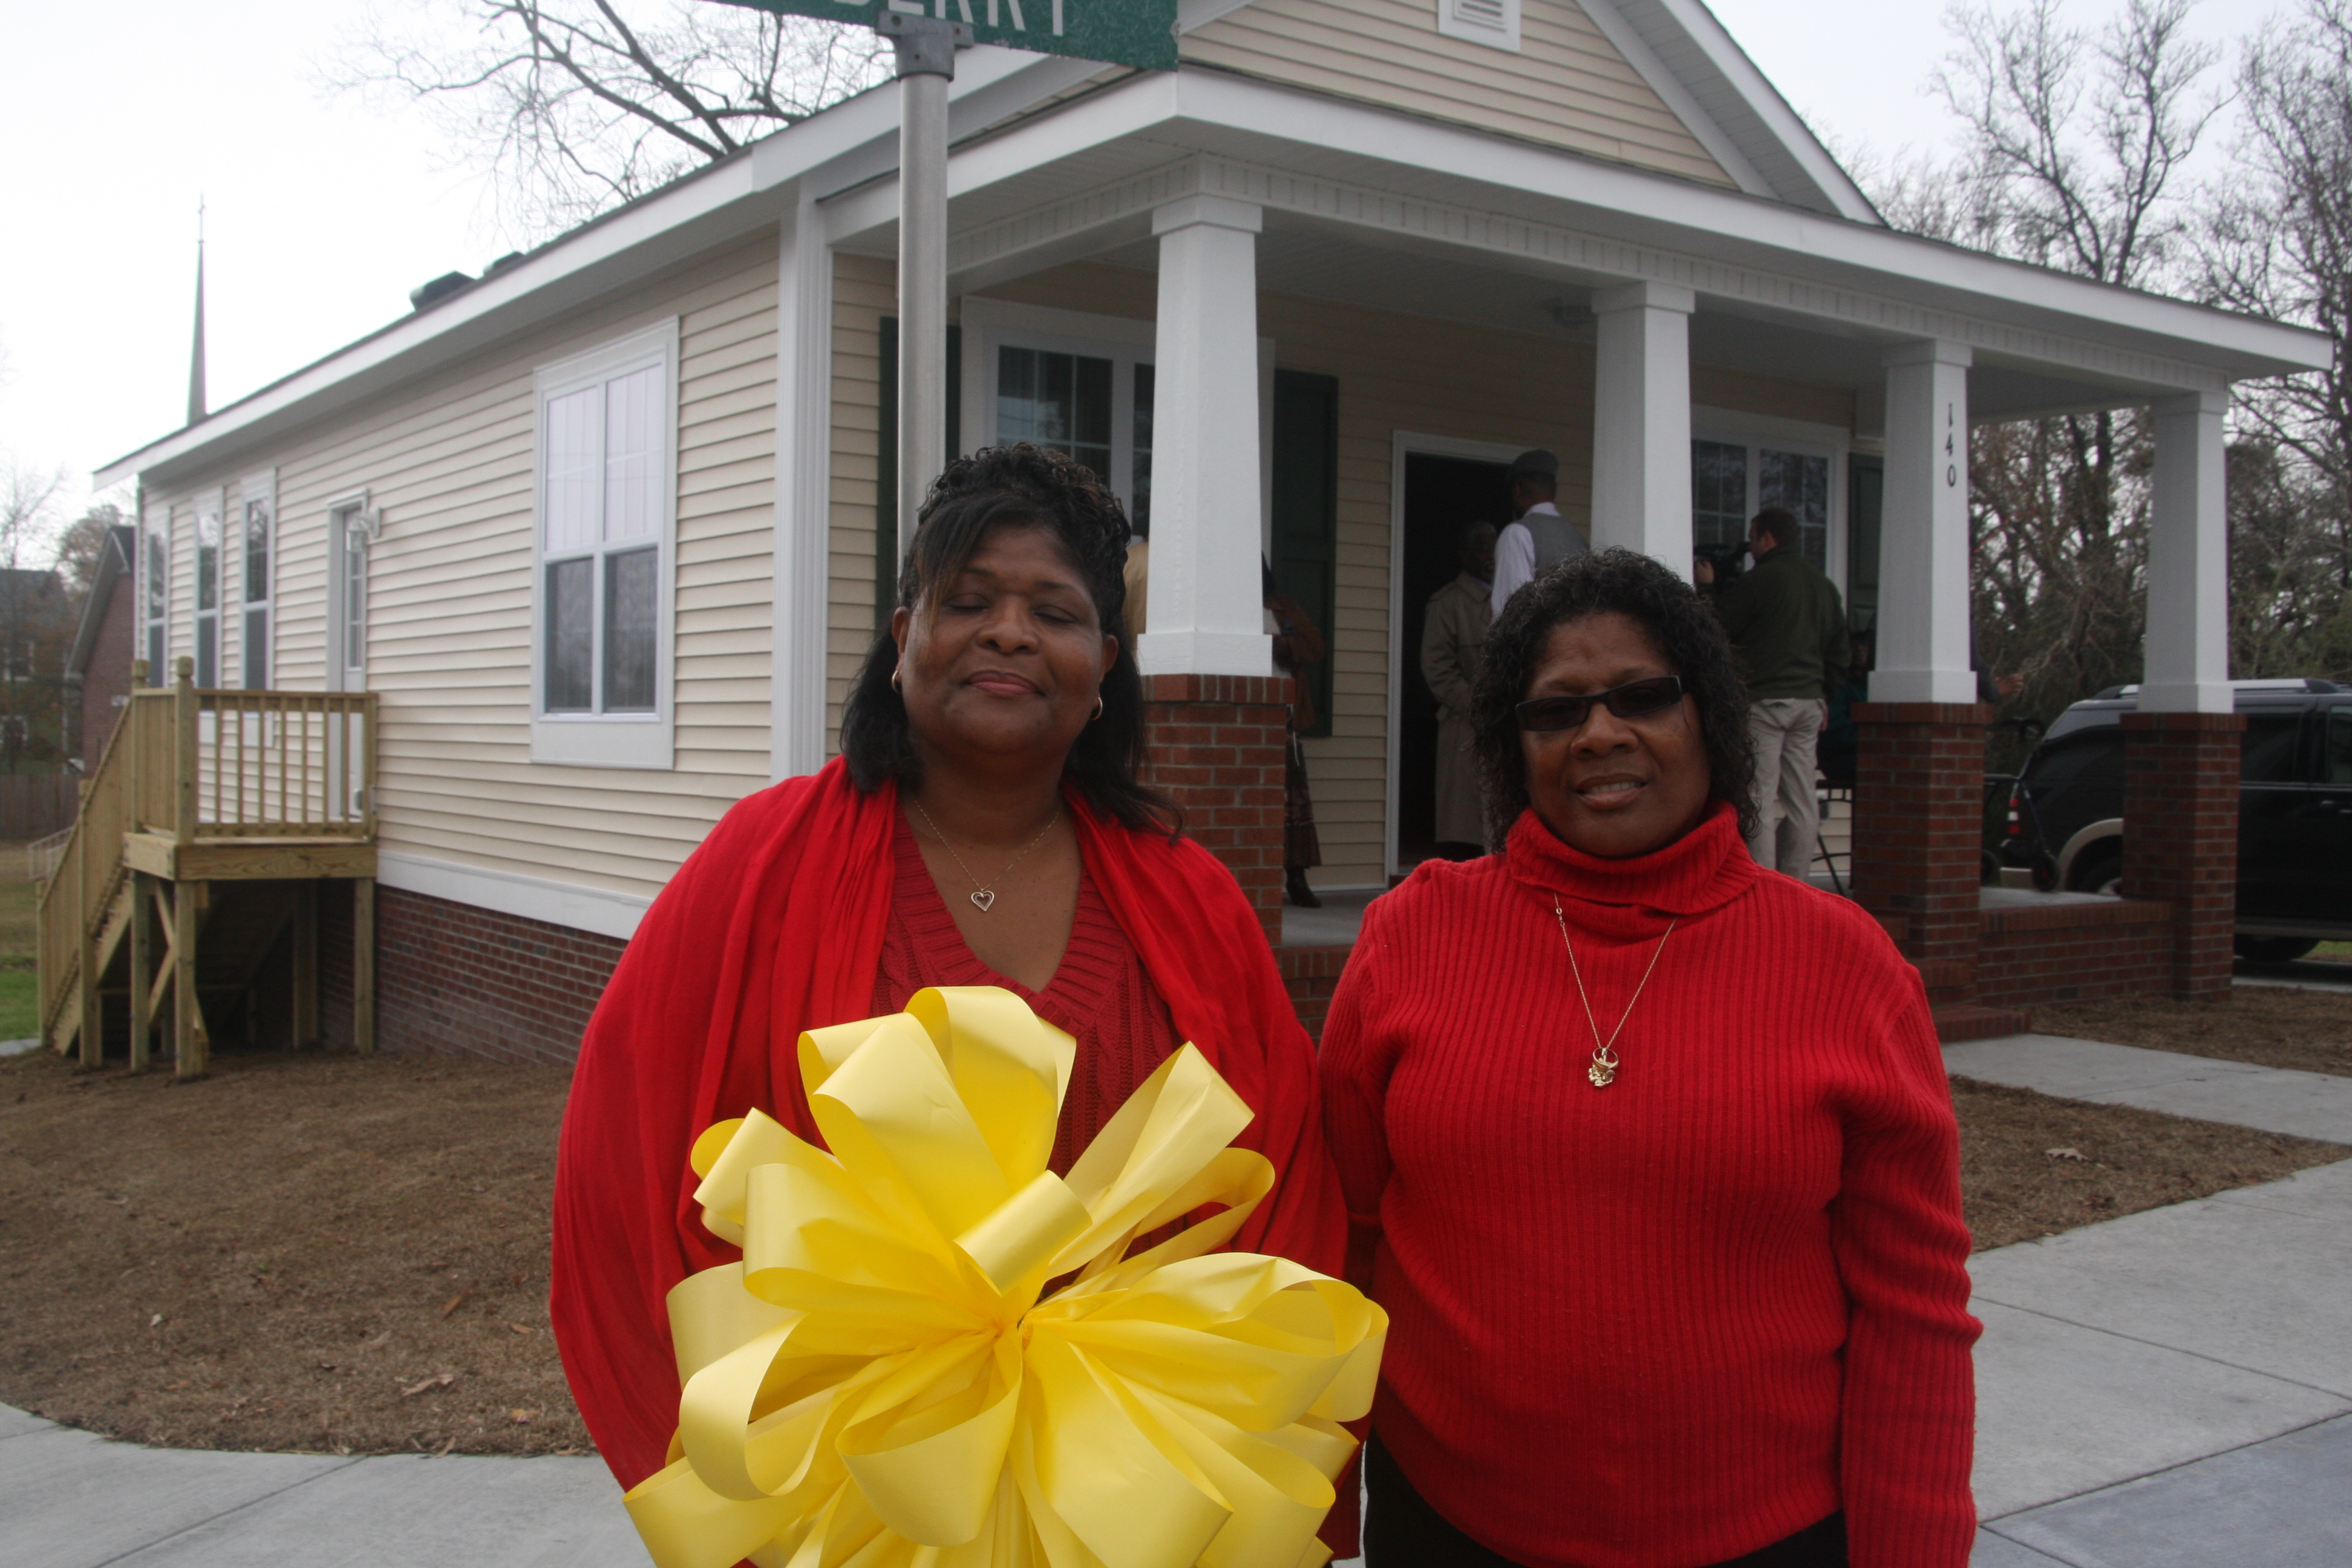 2 Women in Front of Home with Big Yellow Bow